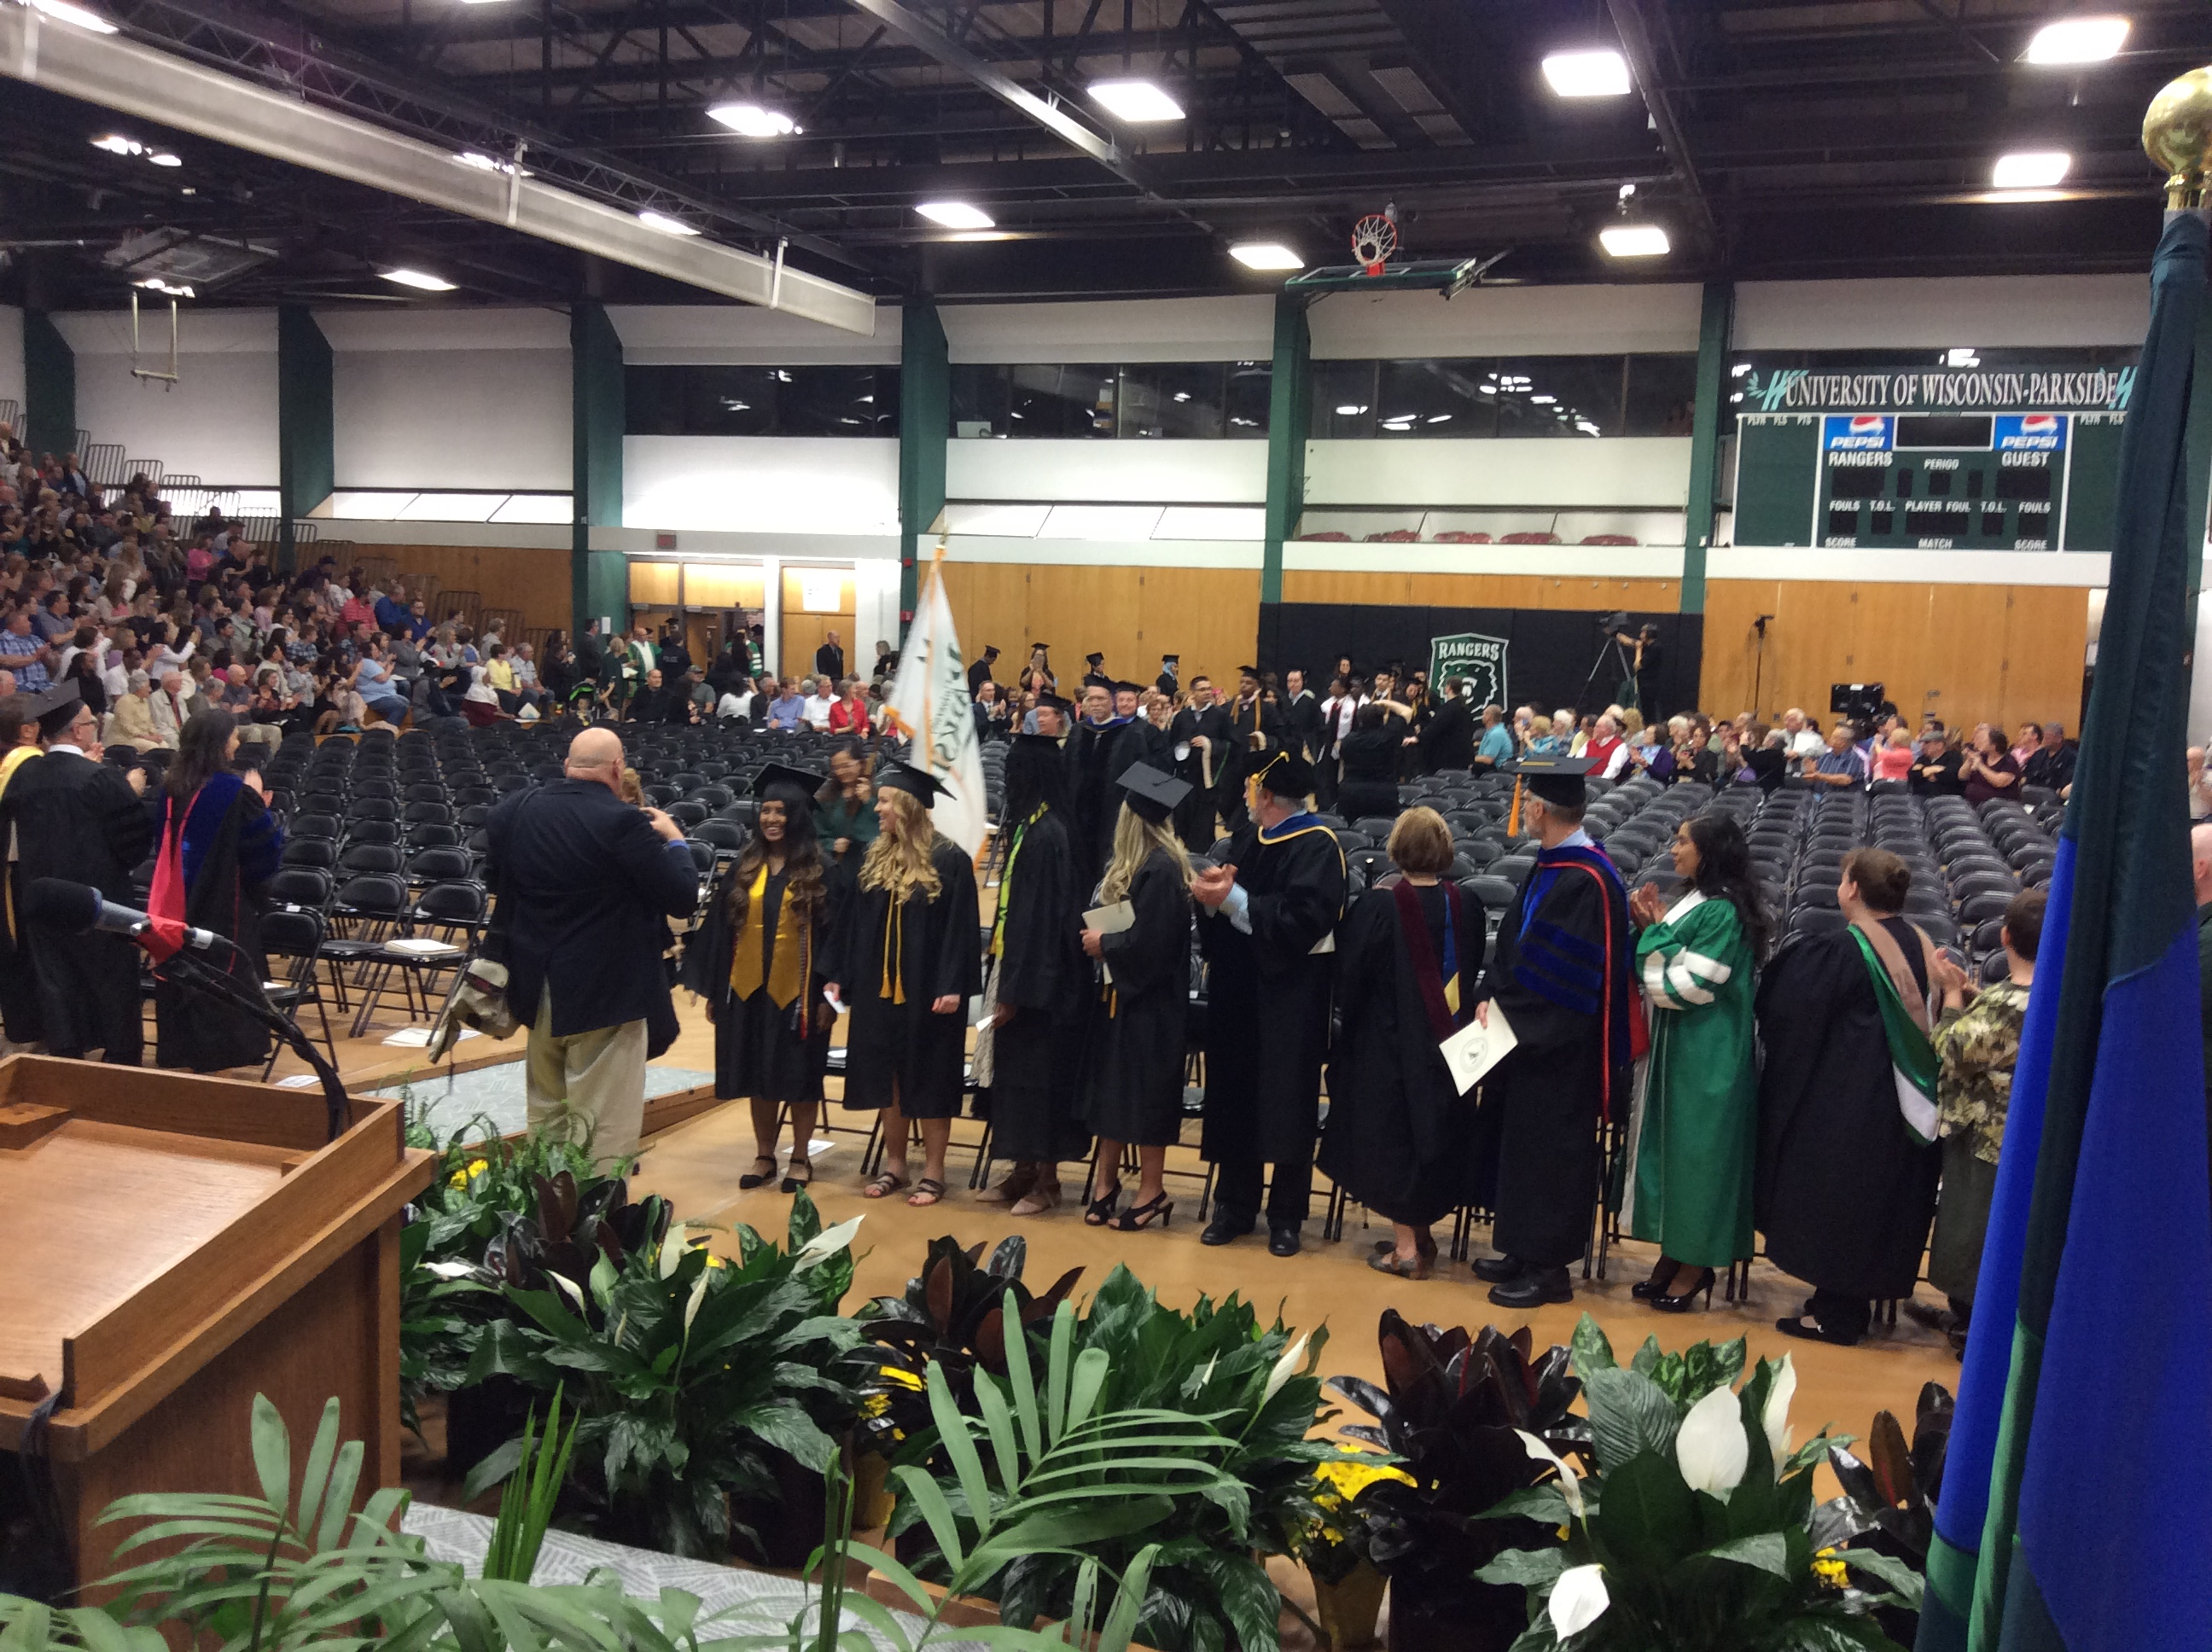 Spring 17 Commencement Opening